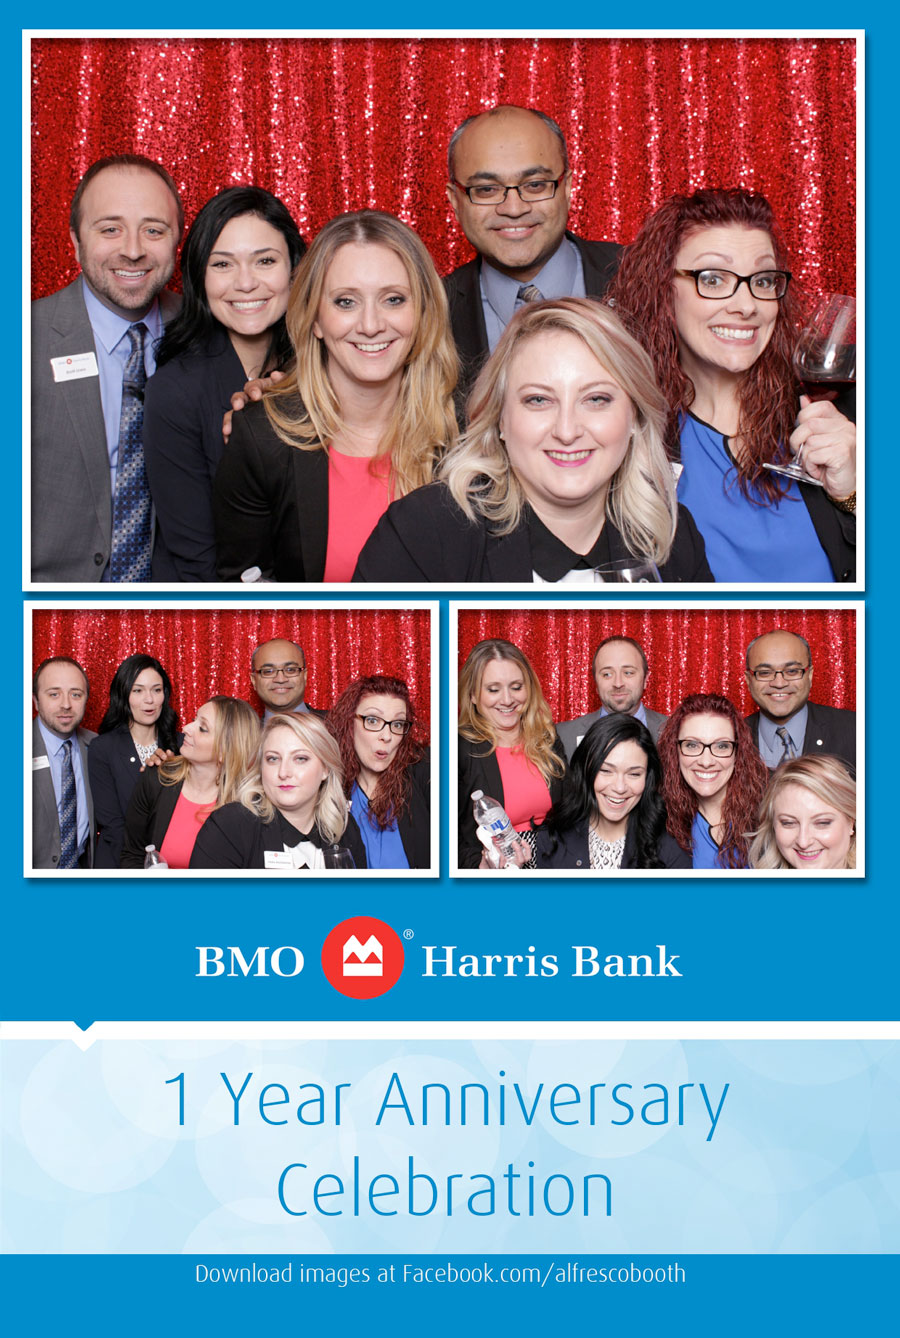 BMO Harris Bank 1 Year Anniversary Celebration